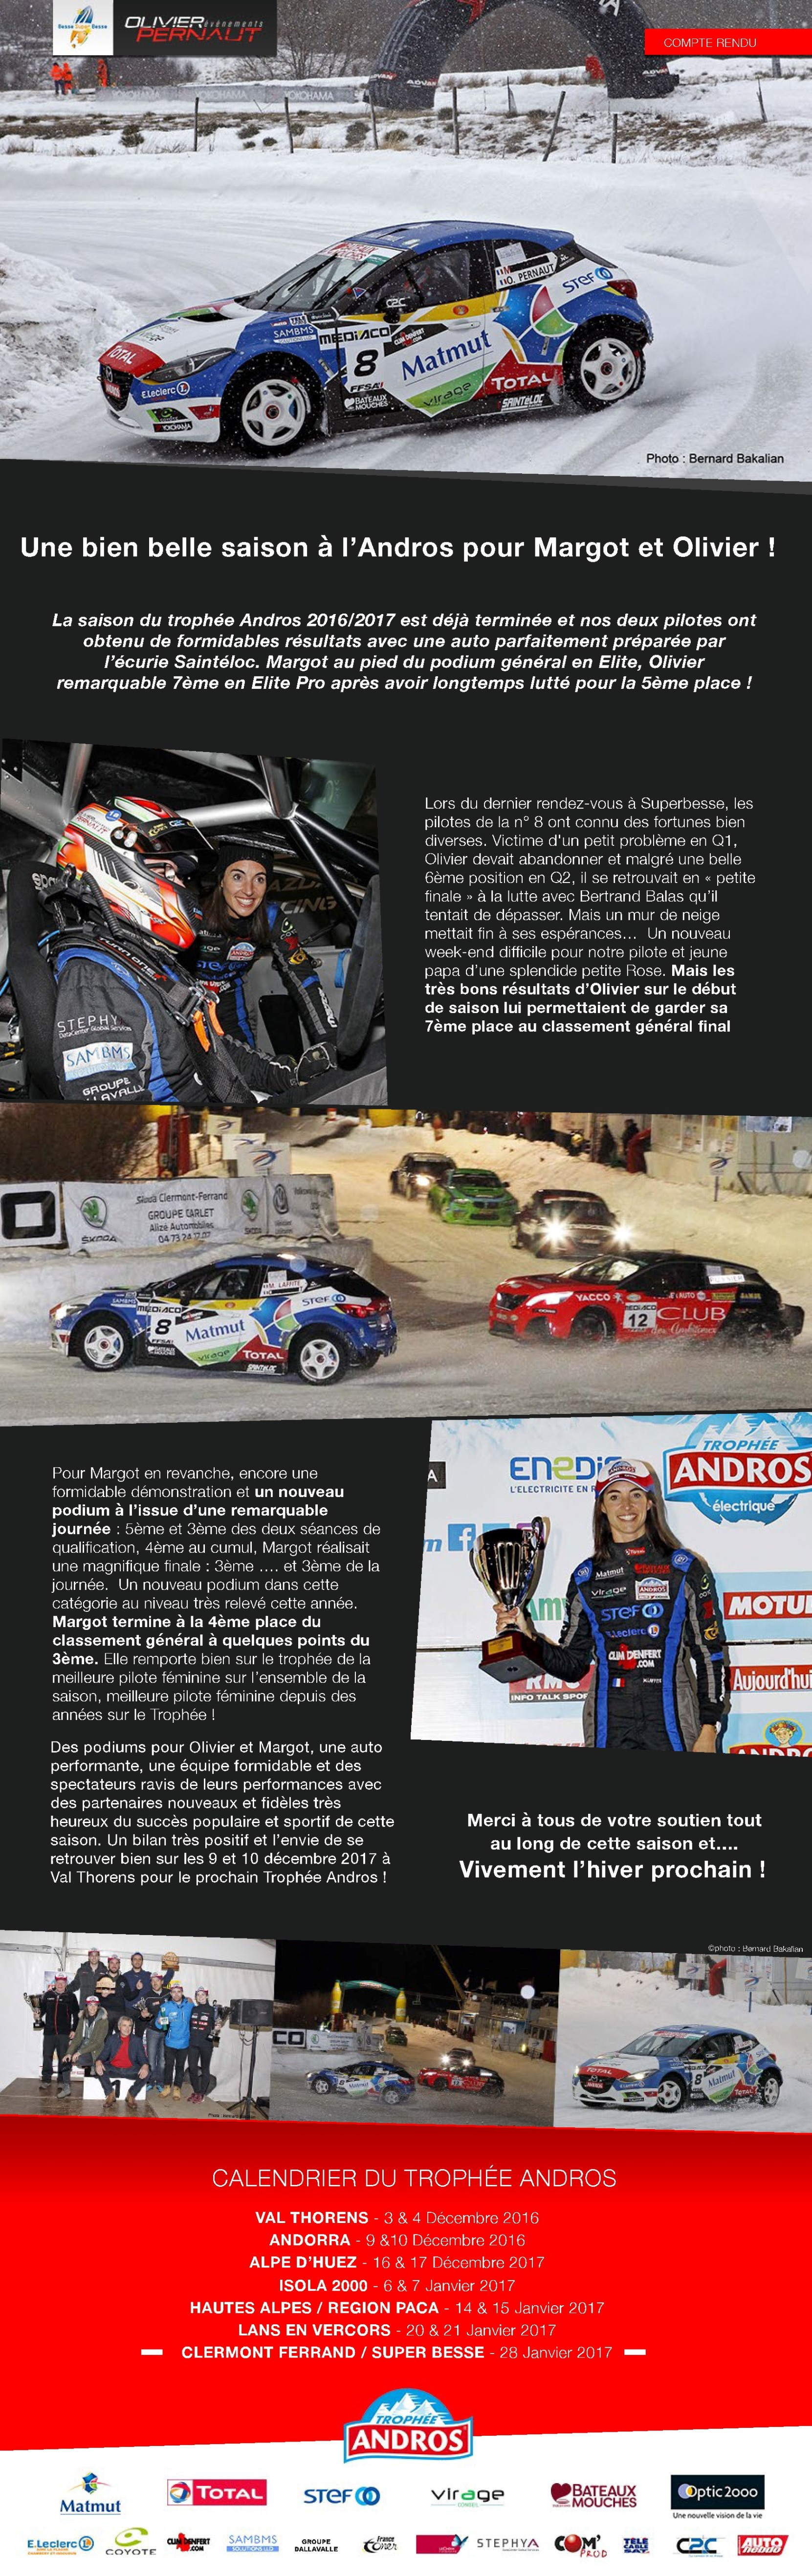 Trophee-Andros-2017-Super-Besse_Pernaut_Laffite-page-0